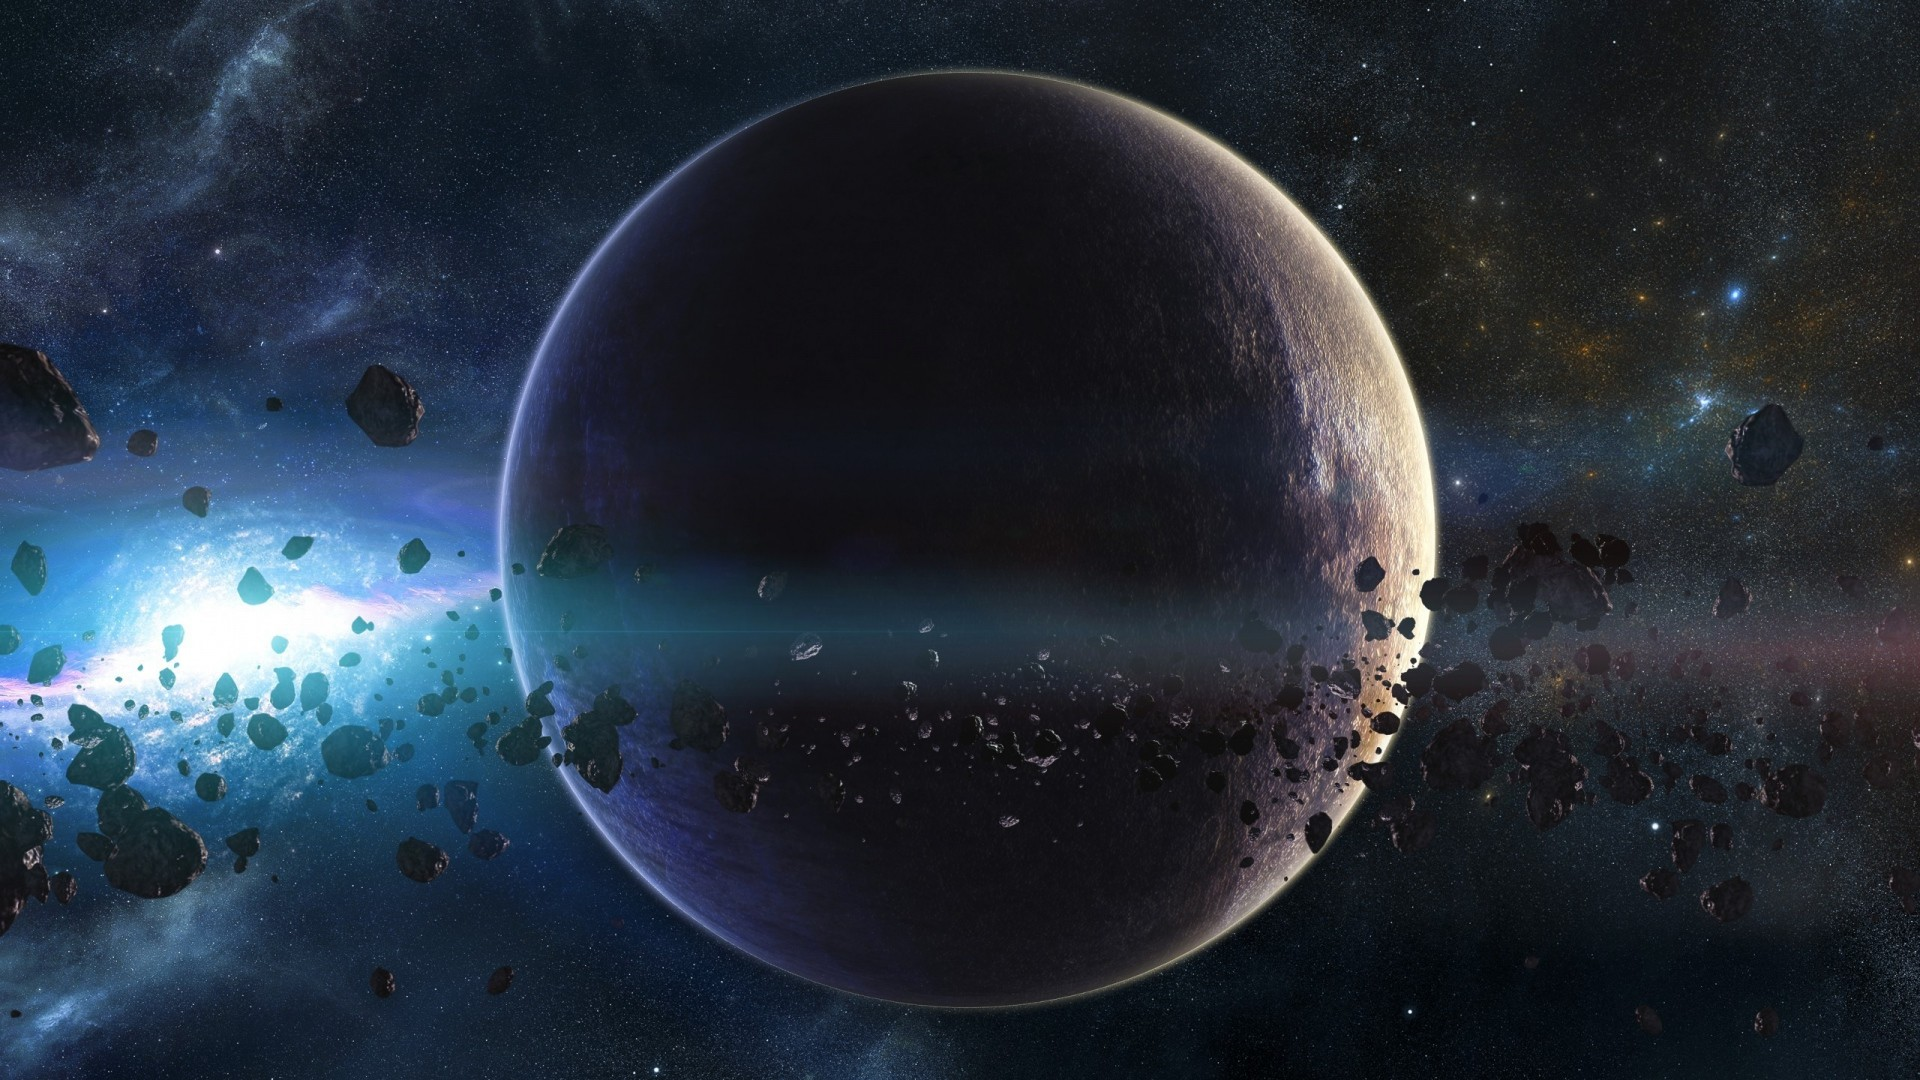 1920x1080 ... Background Full HD 1080p.  Wallpaper space, planets,  asteroids, stars, belt, galaxy